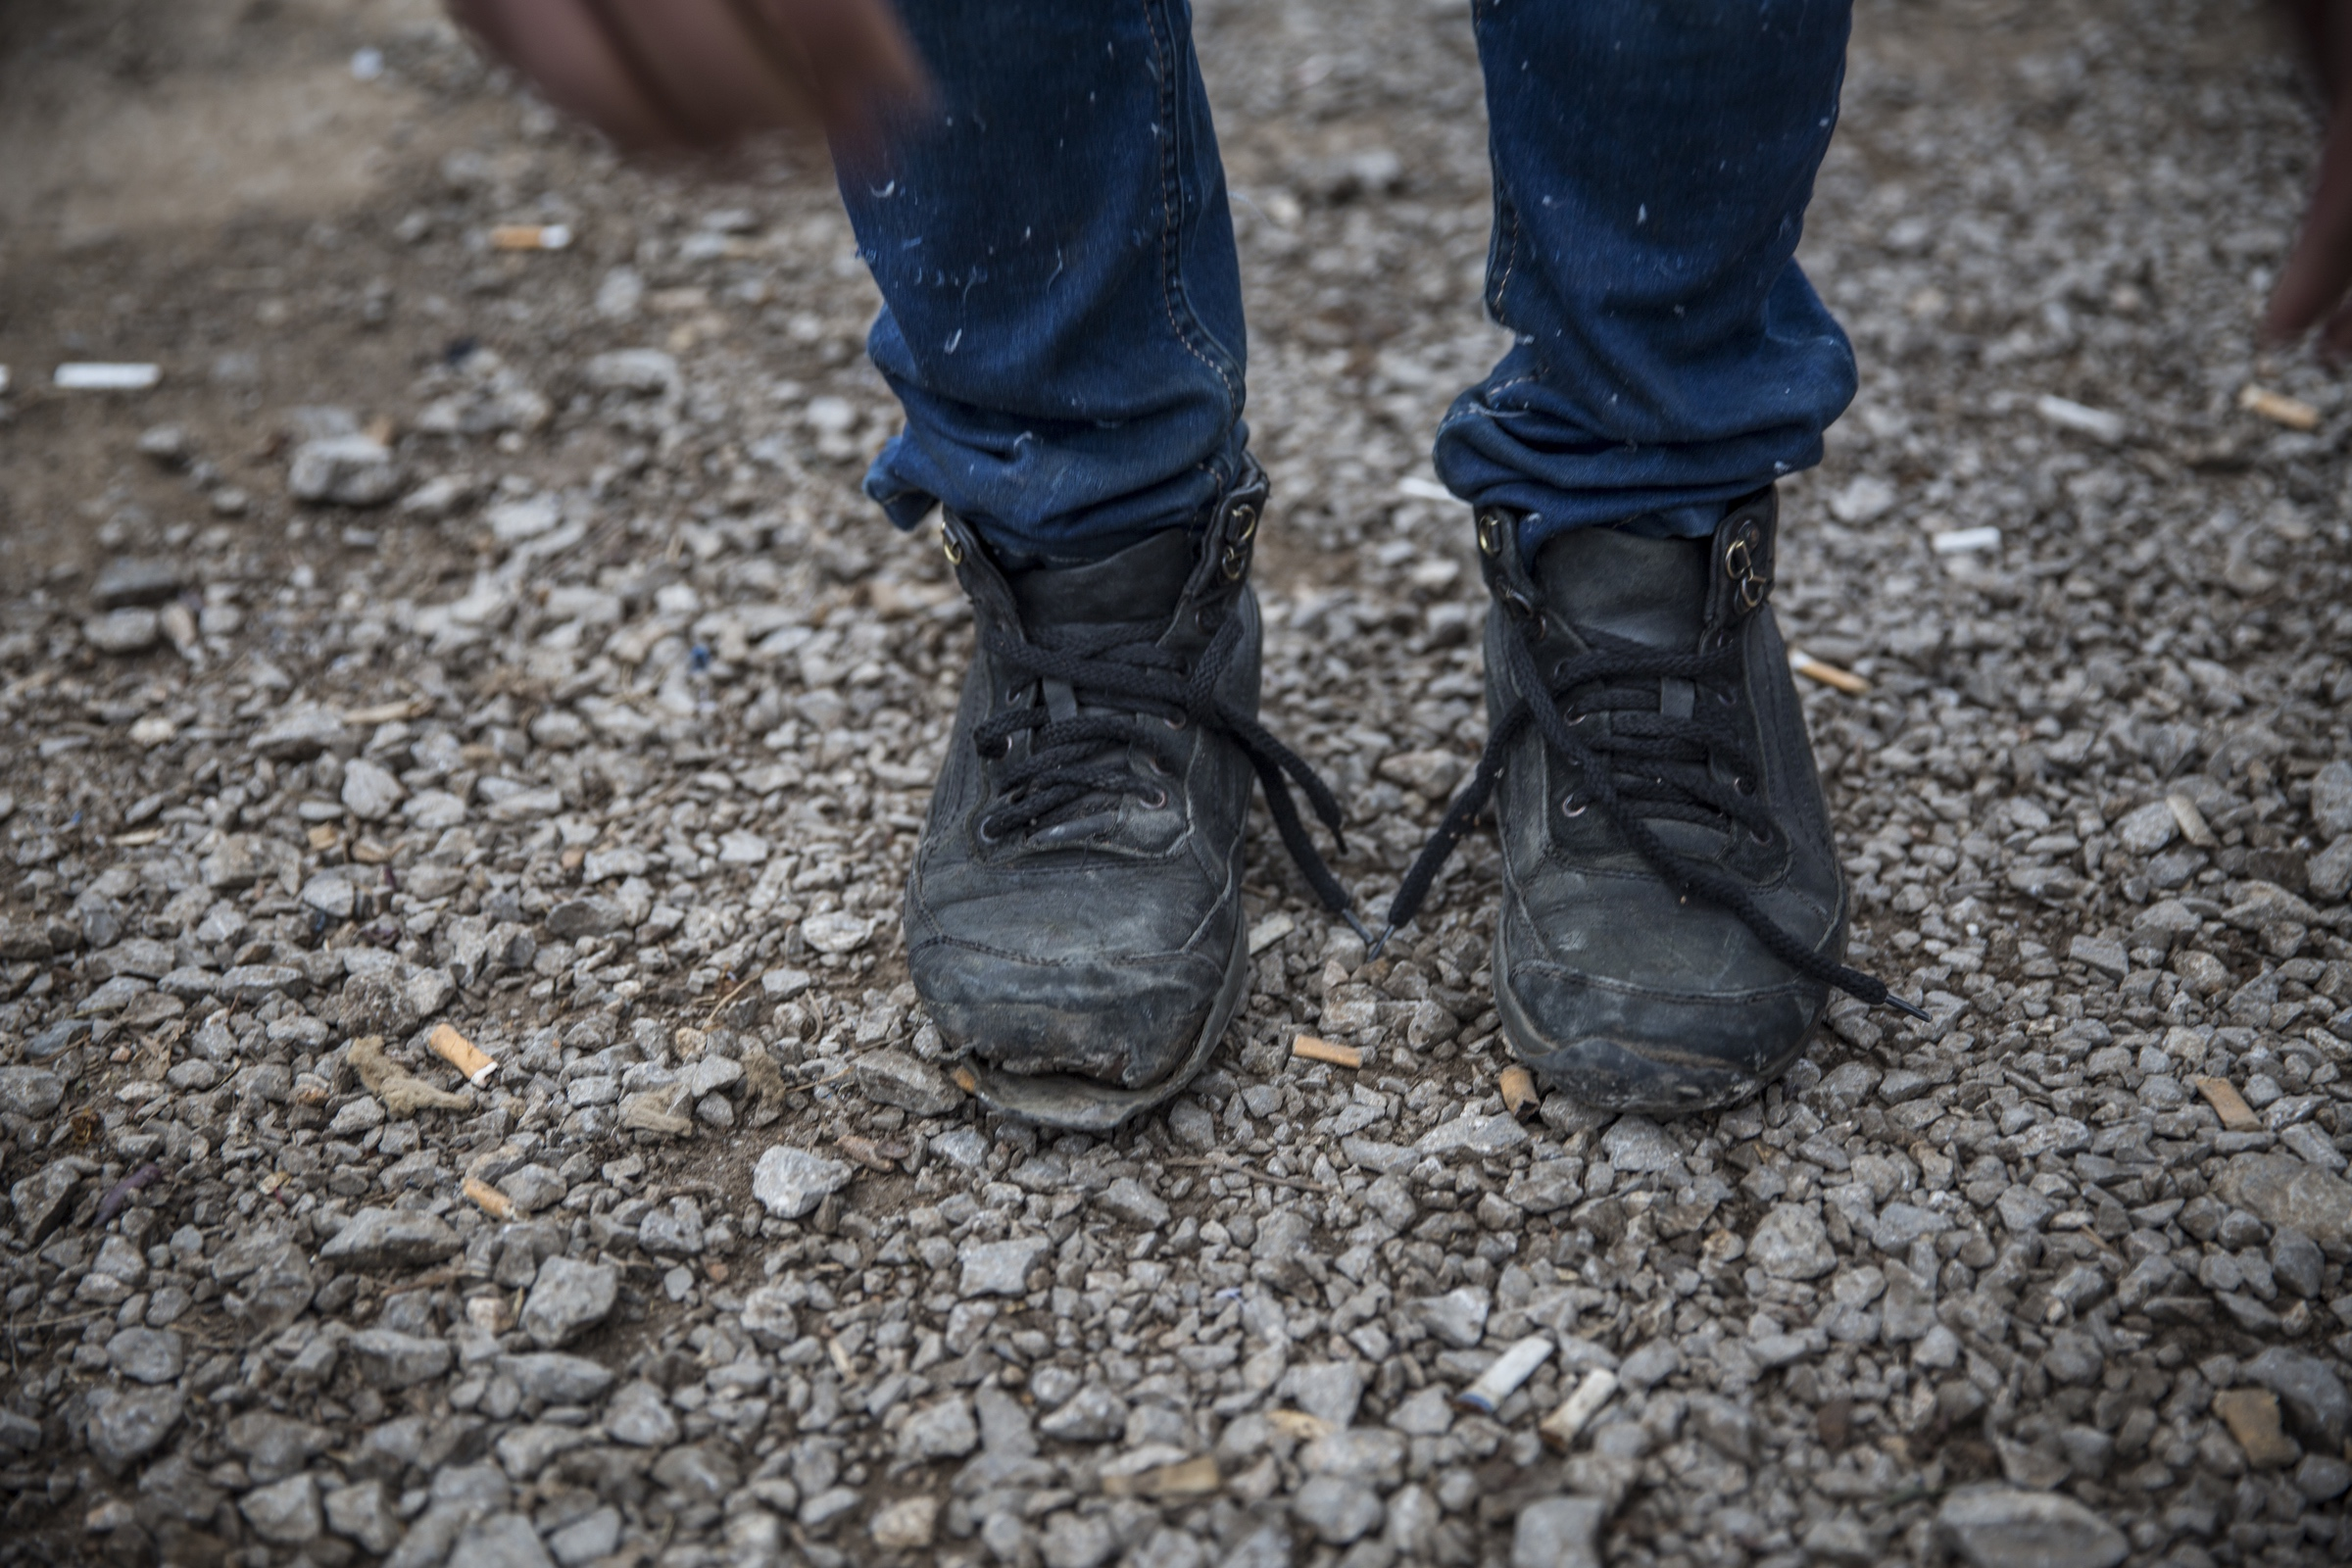 An Afghan man's broken boots after traveling through Iran, Turkey, Bulgaria and arriving in Serbia